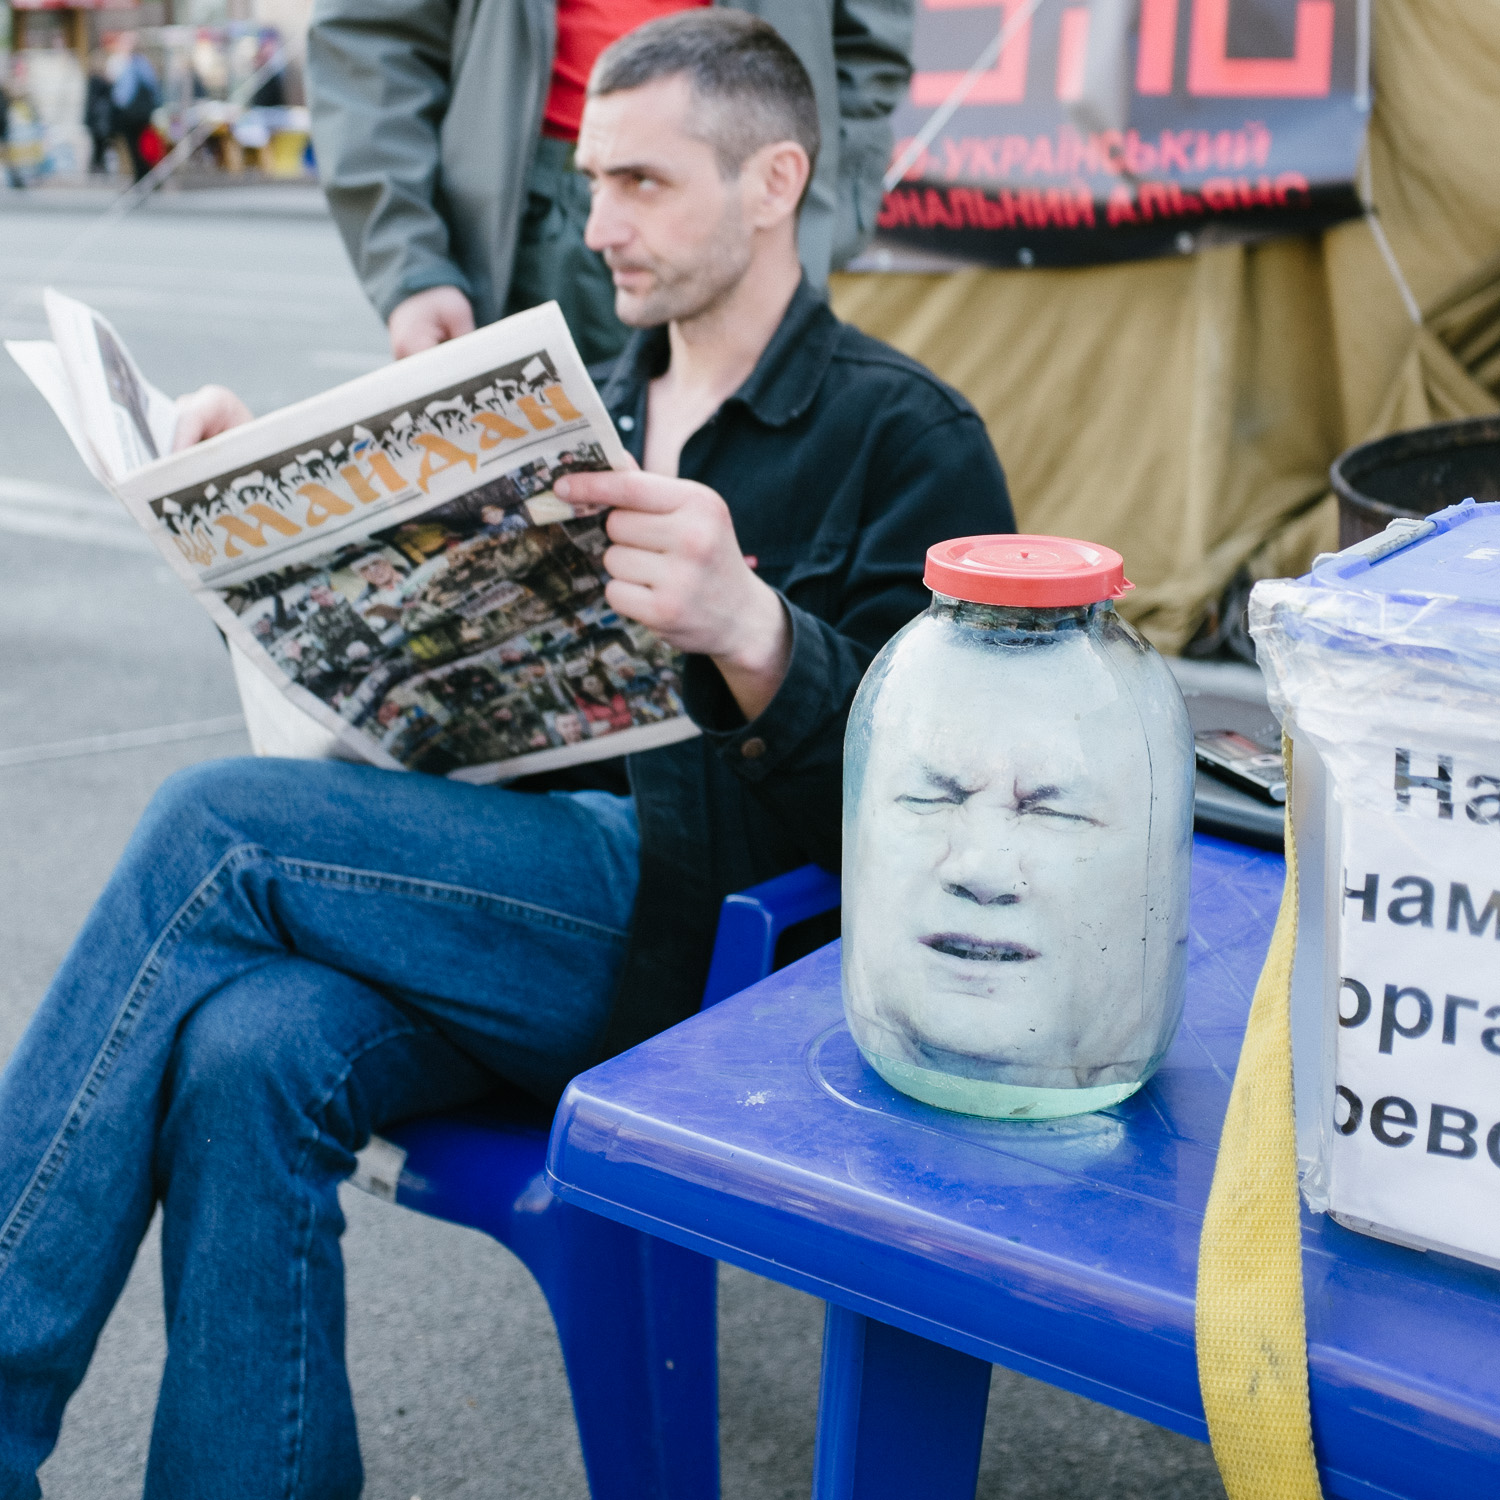 A man reads from a free newspaper reporting on the Euromaidan uprisings next to a replica head of former president Viktor Yanukovych in a sealed jar.